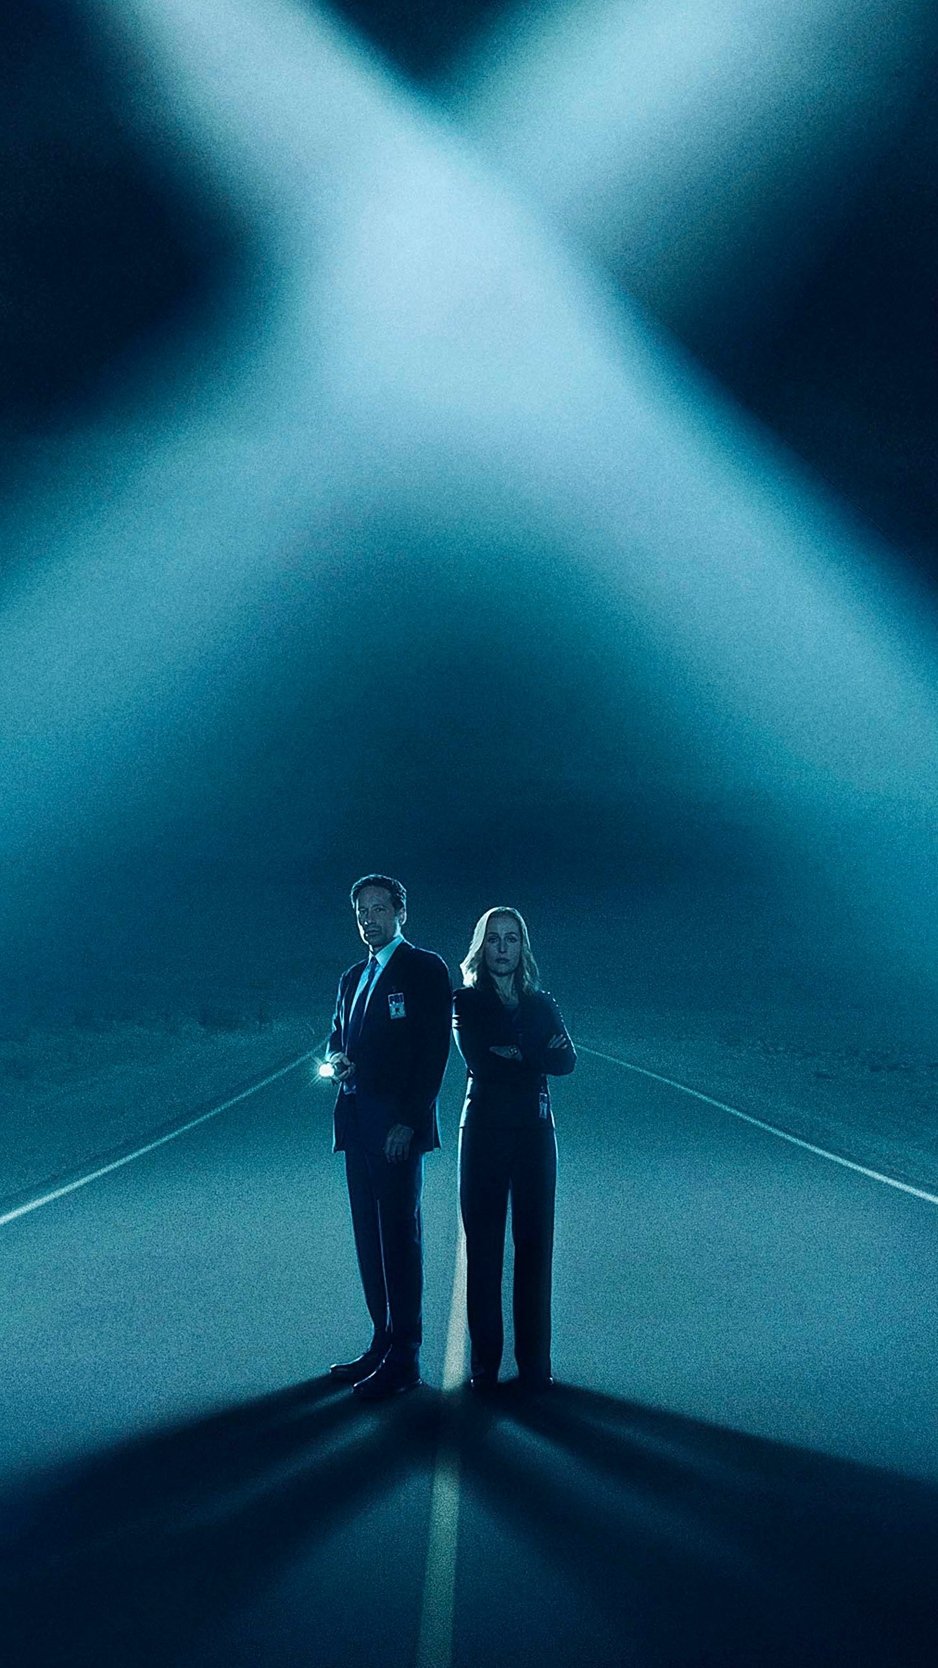 download wallpaper 938x1668 the x files, david duchovny, gillian